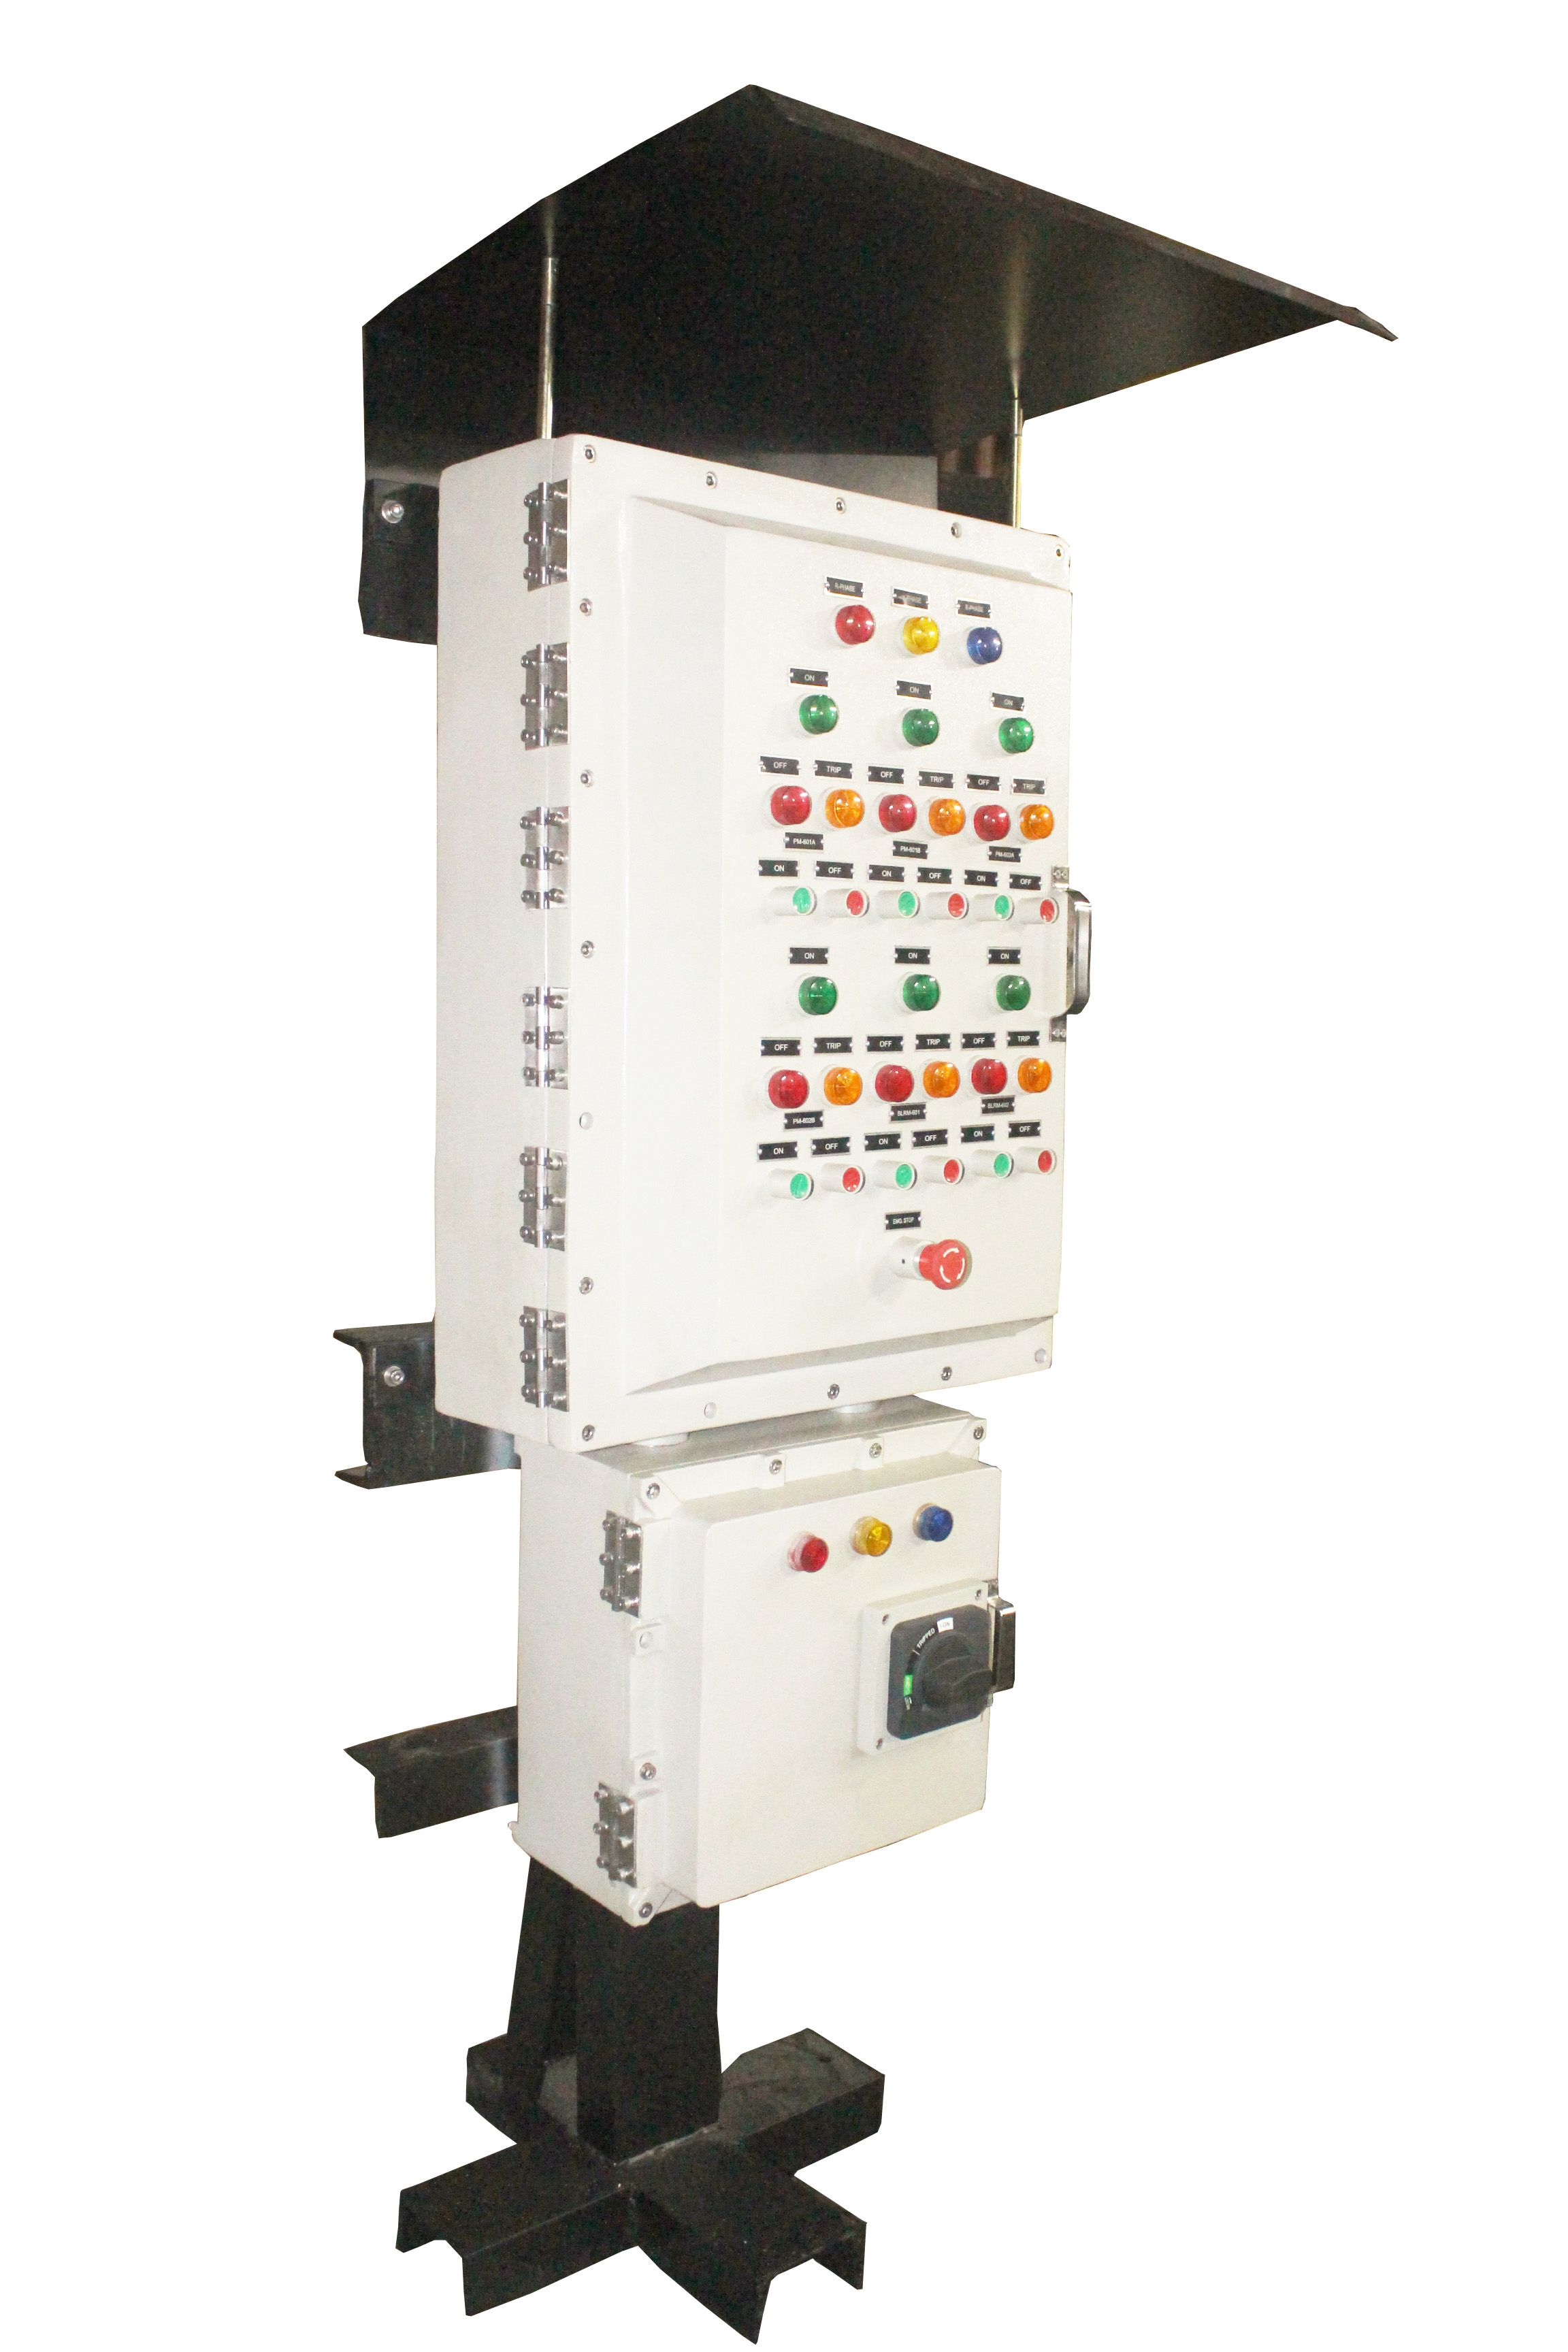 flameproof blower panel sales shreeelectrical in mob 8424007630 mob